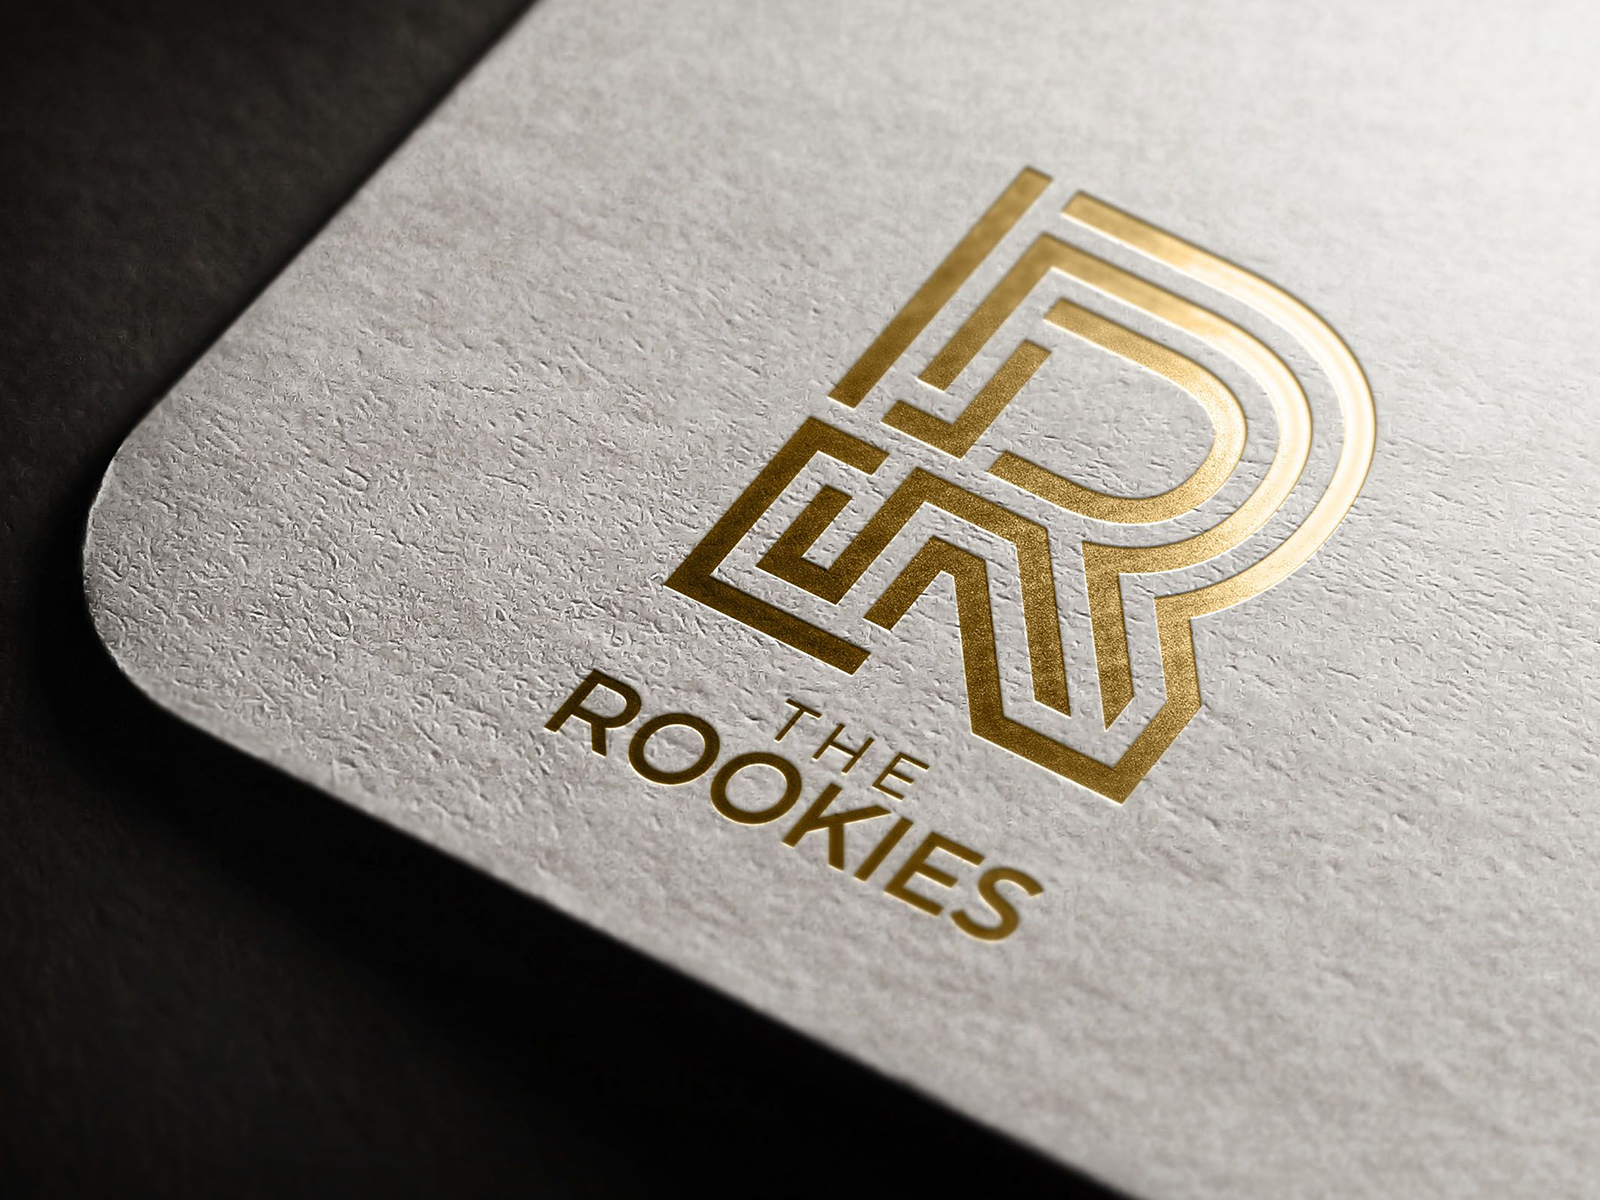 """Golden """"R"""" logo for the Rookies imposed near corner of grey paper"""